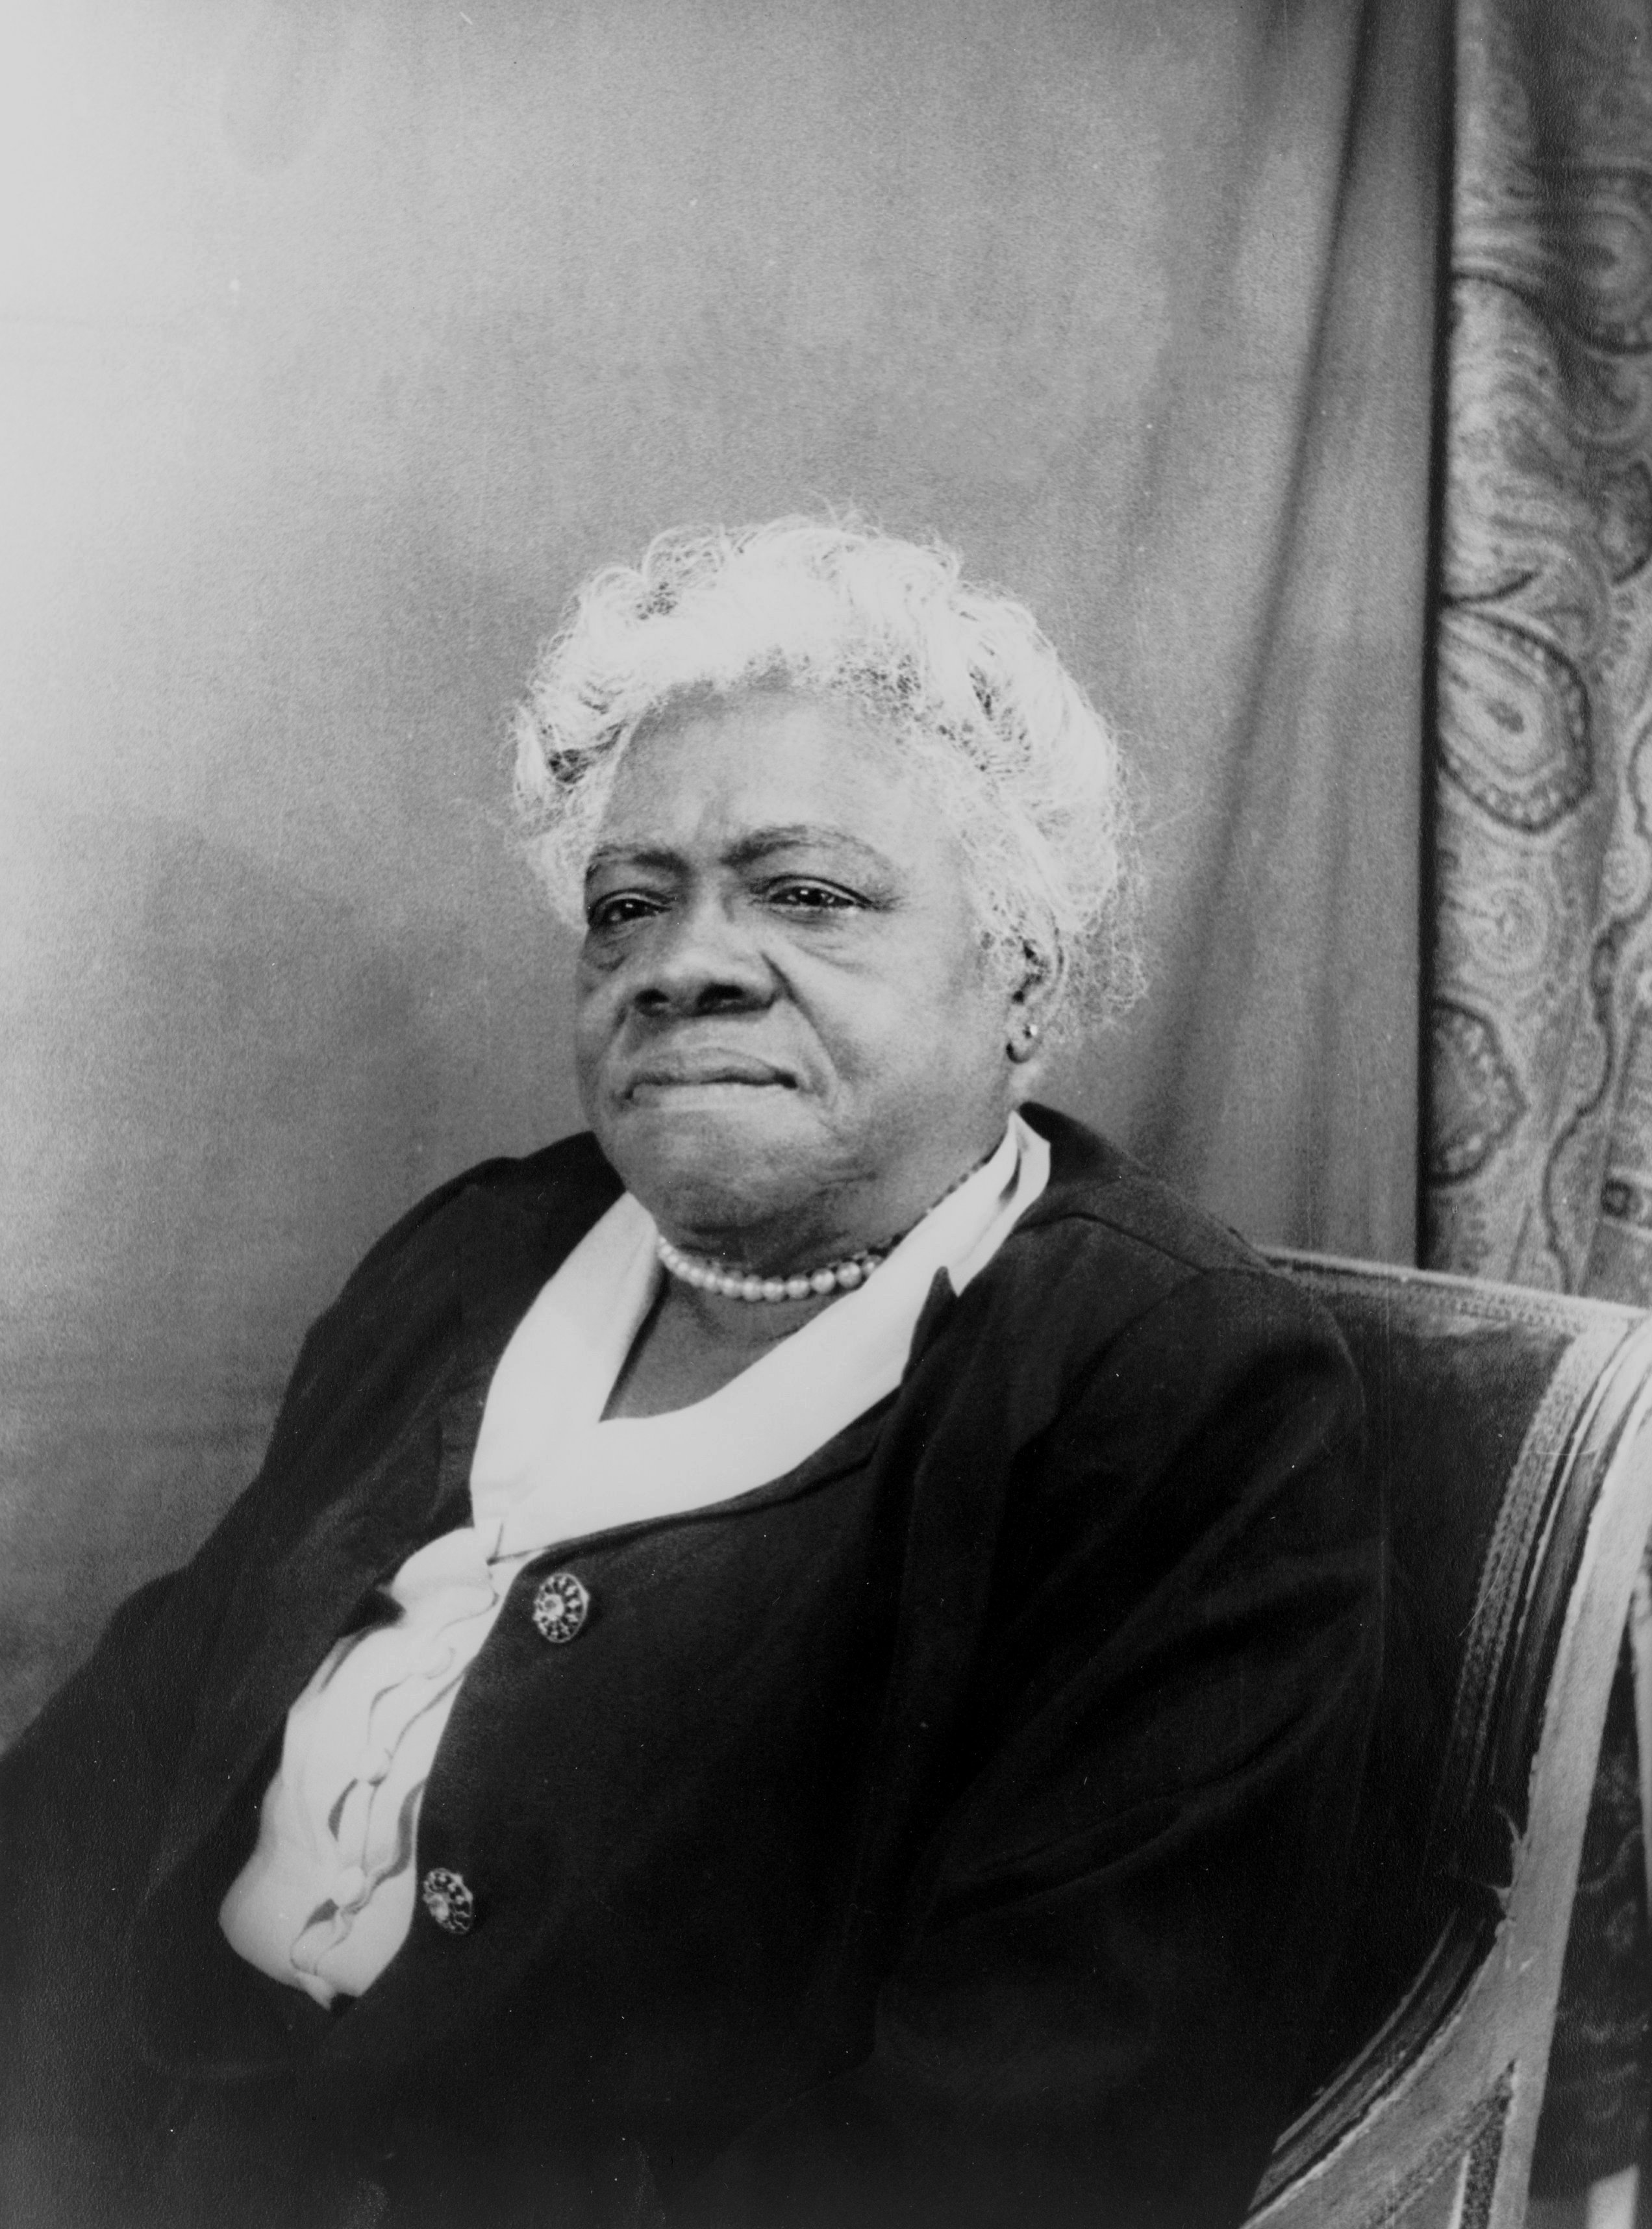 April 25: Dr. Ralph Bunche, W.E.B. Du Bois and Mary McLeod Bethune attended a conference in CA that led to the founding of the United Nations, 1945